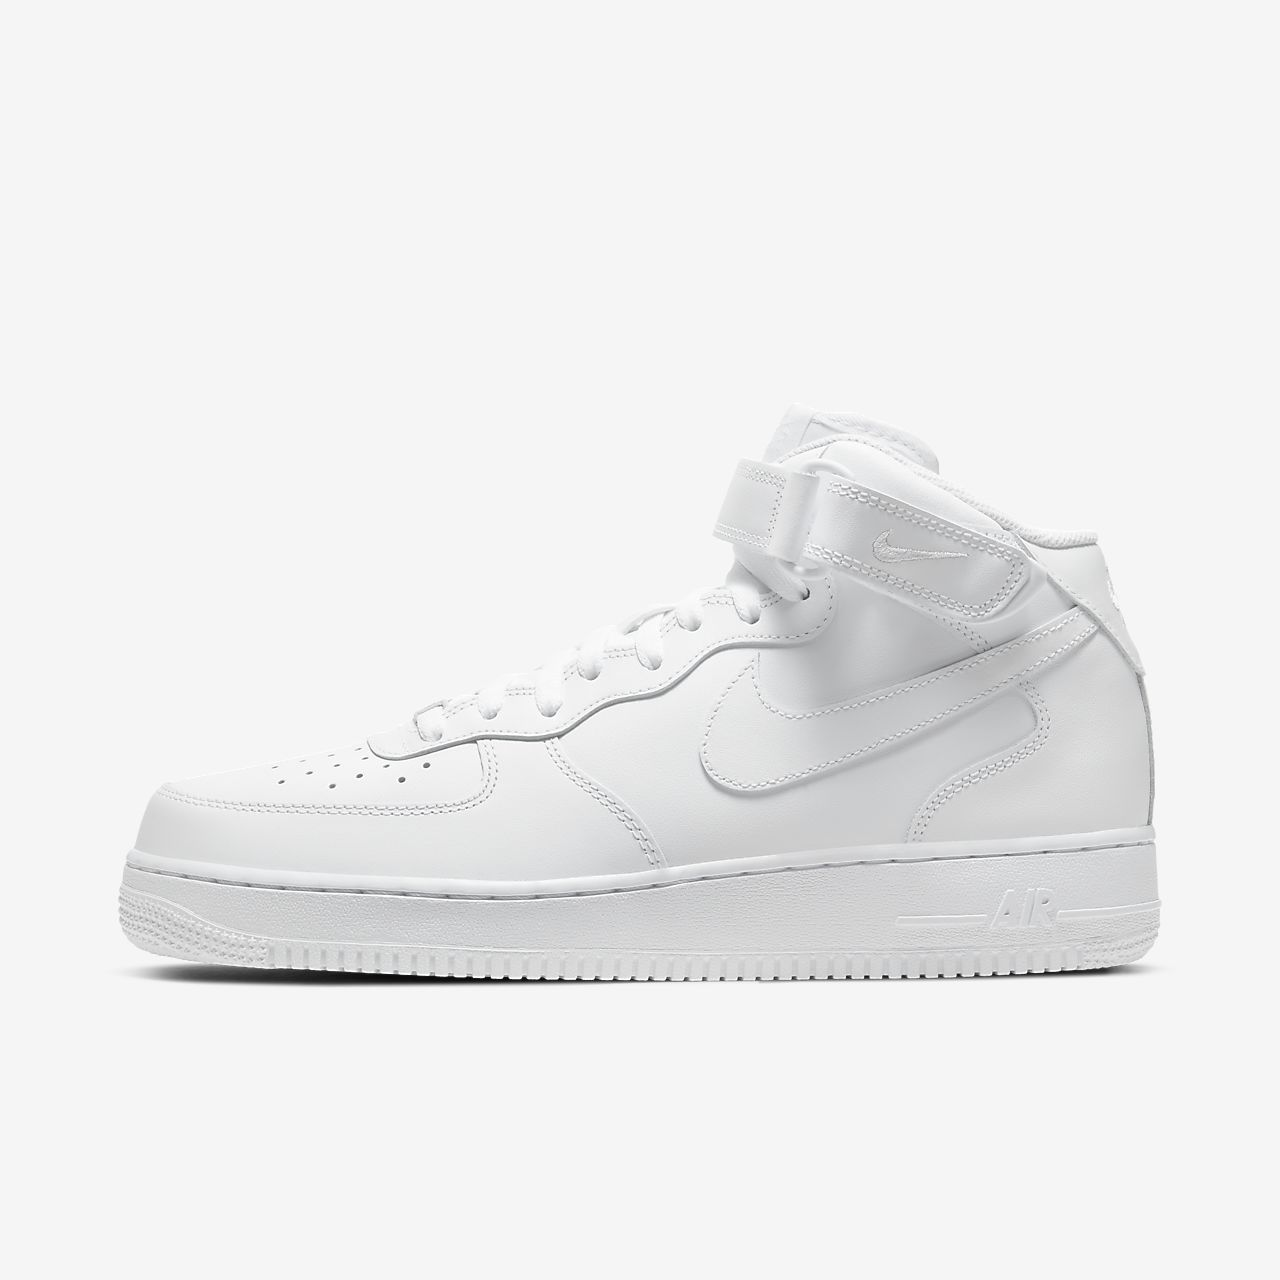 nike air force 1 mid men's shoes nz